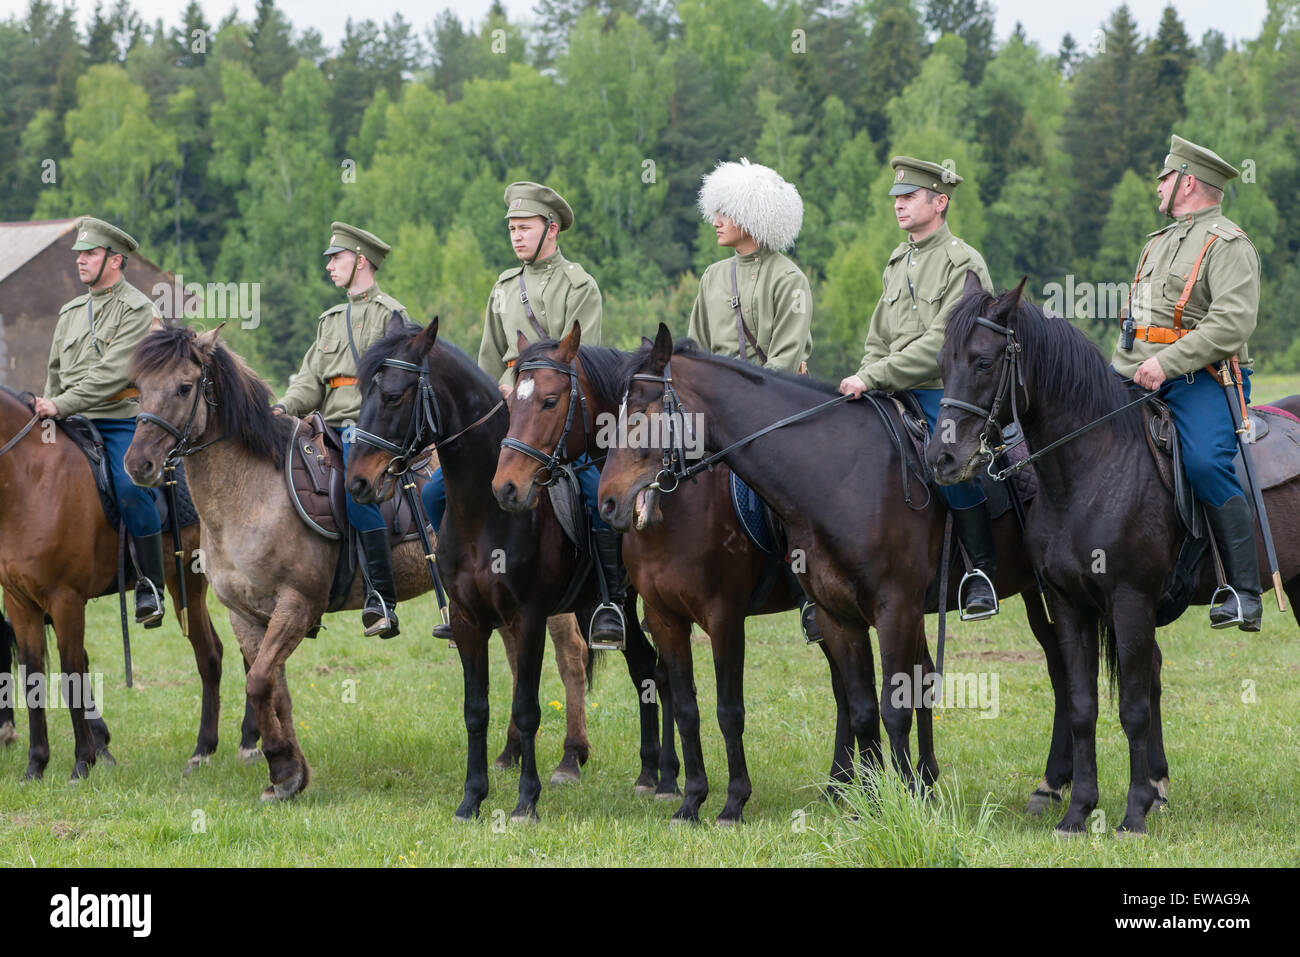 RUSSIA, CHERNOGOLOVKA - MAY 17: Cavalry soldiers stands in row on History reenactment of battle of Civil War in - Stock Image